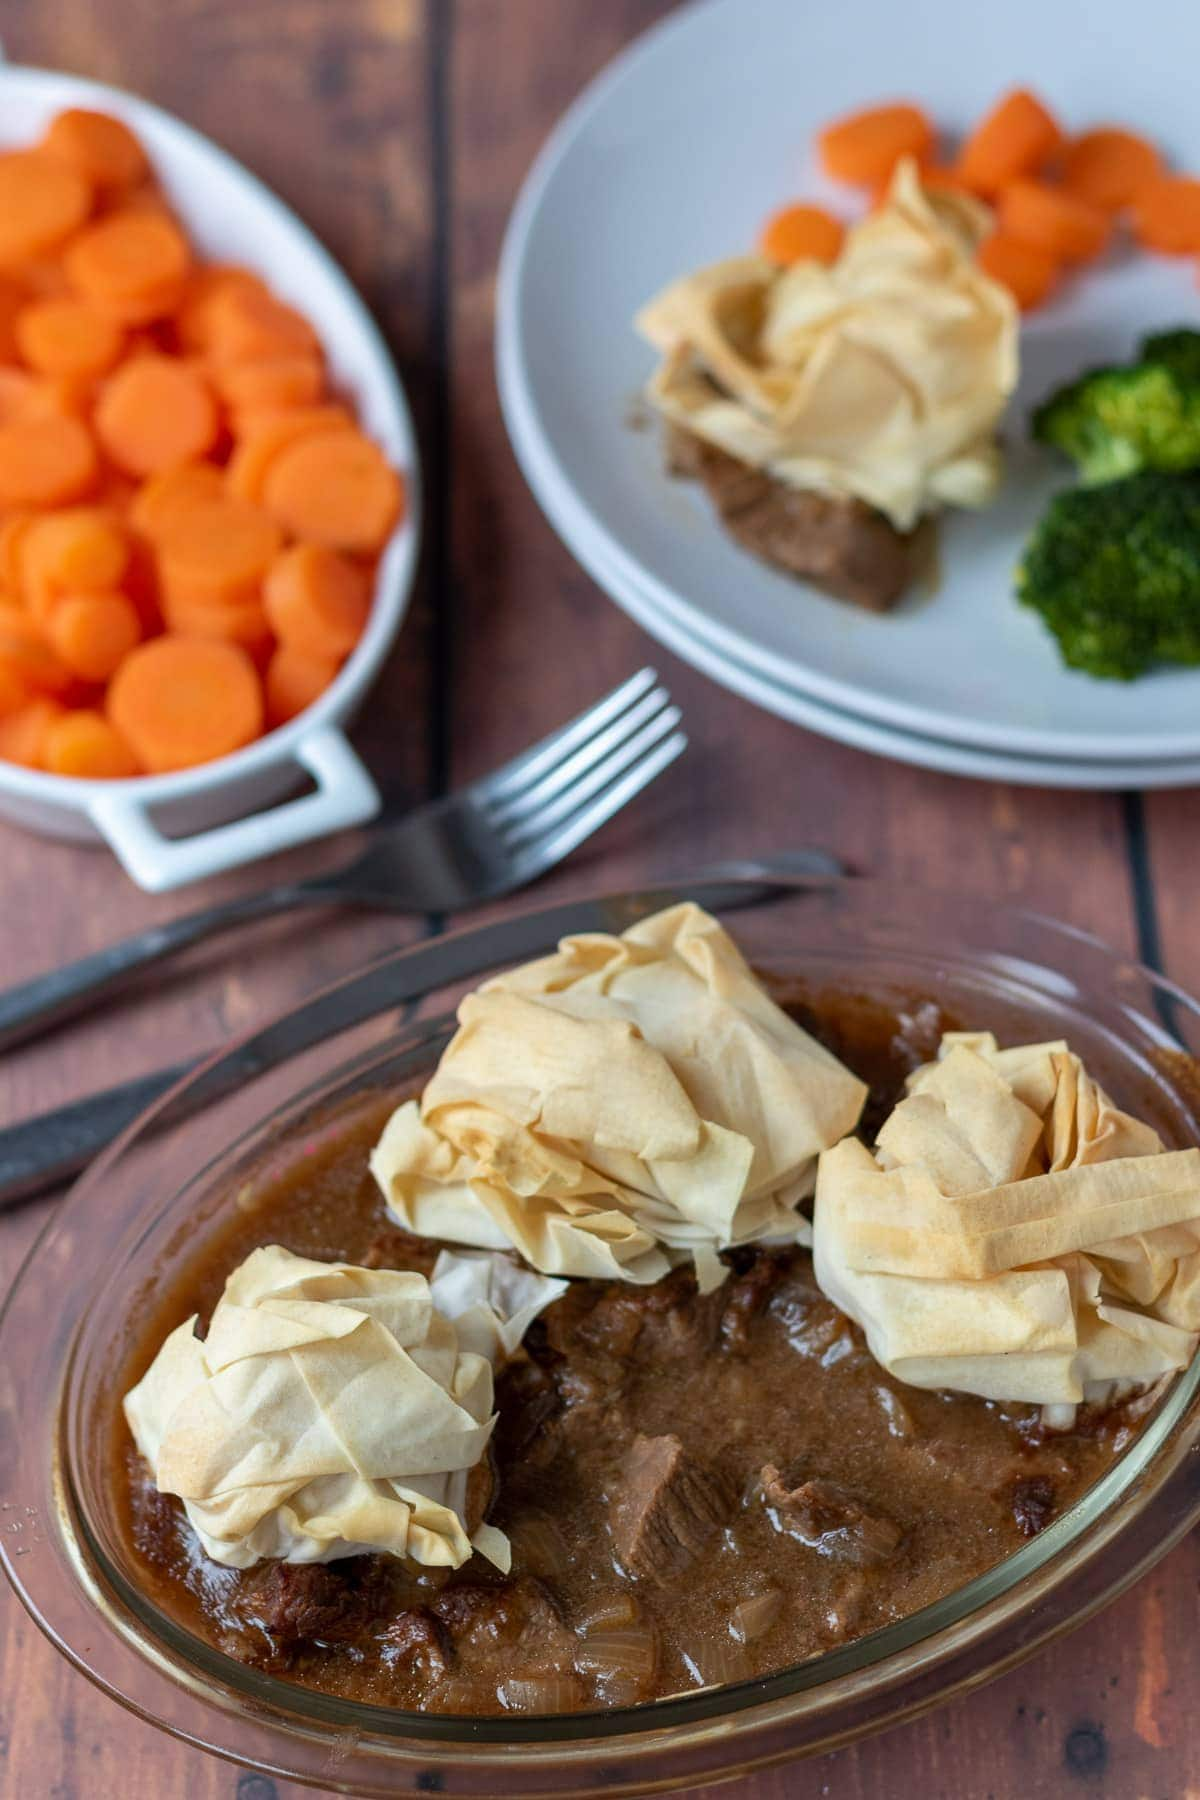 Steak pie with filo pastry topping birds eye view. Plate in the background has a portion of steak pie with filo pastry topping on it and sides of carrots and broccoli.